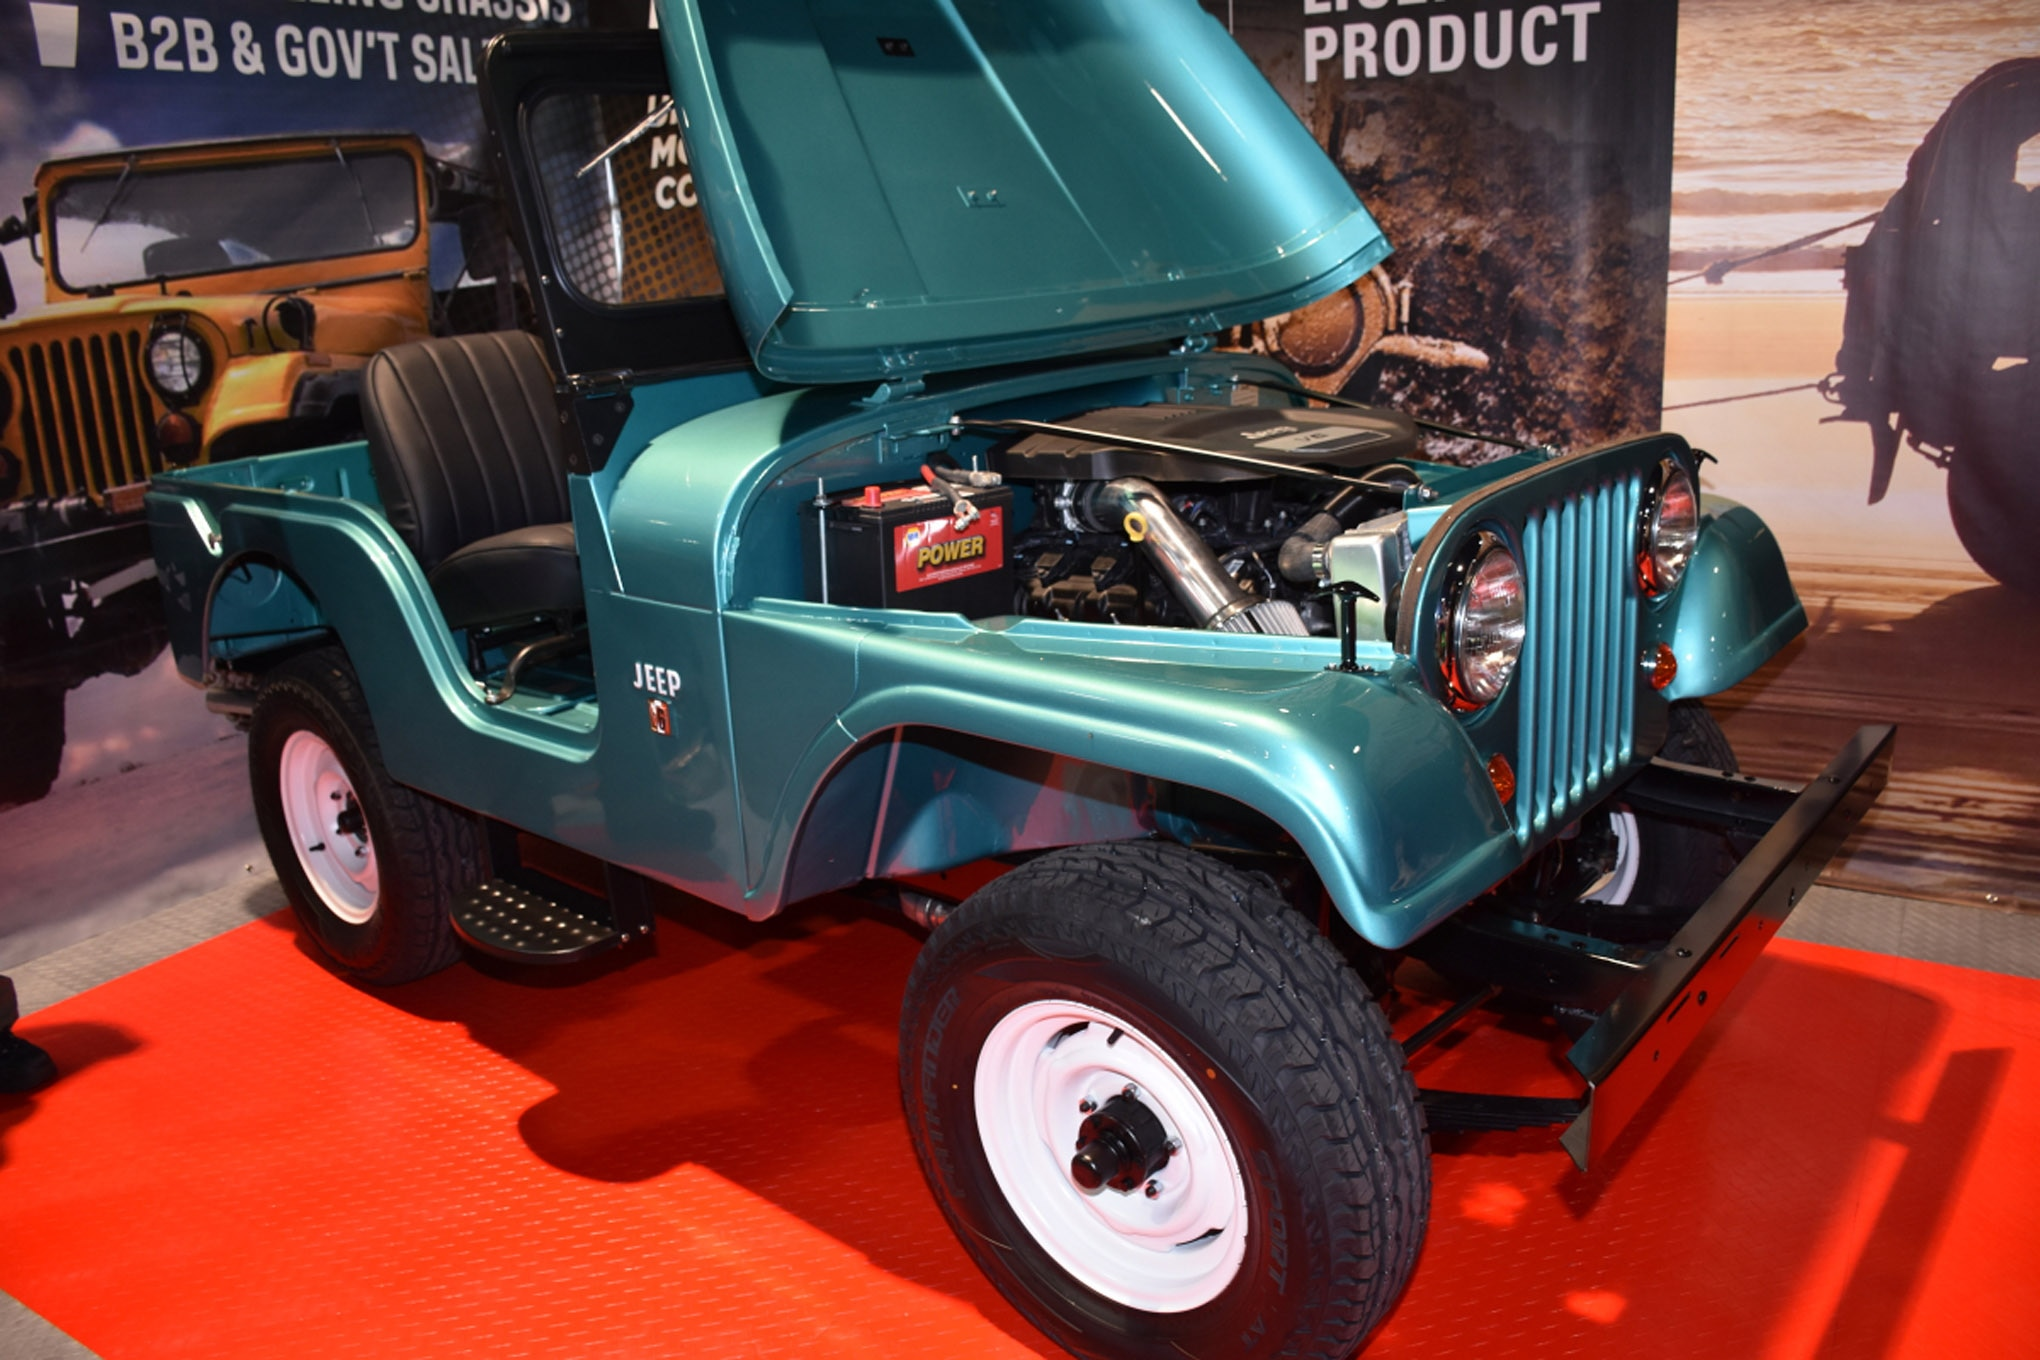 new products of sema 2017 031